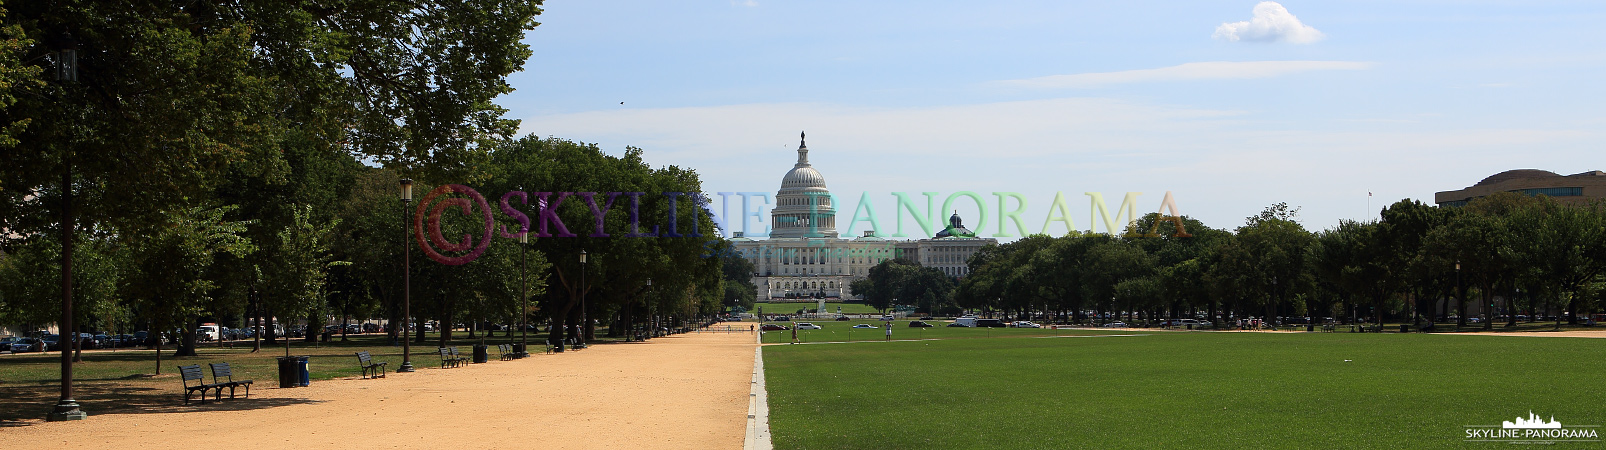 Washington D.C. - Mall und Capitol